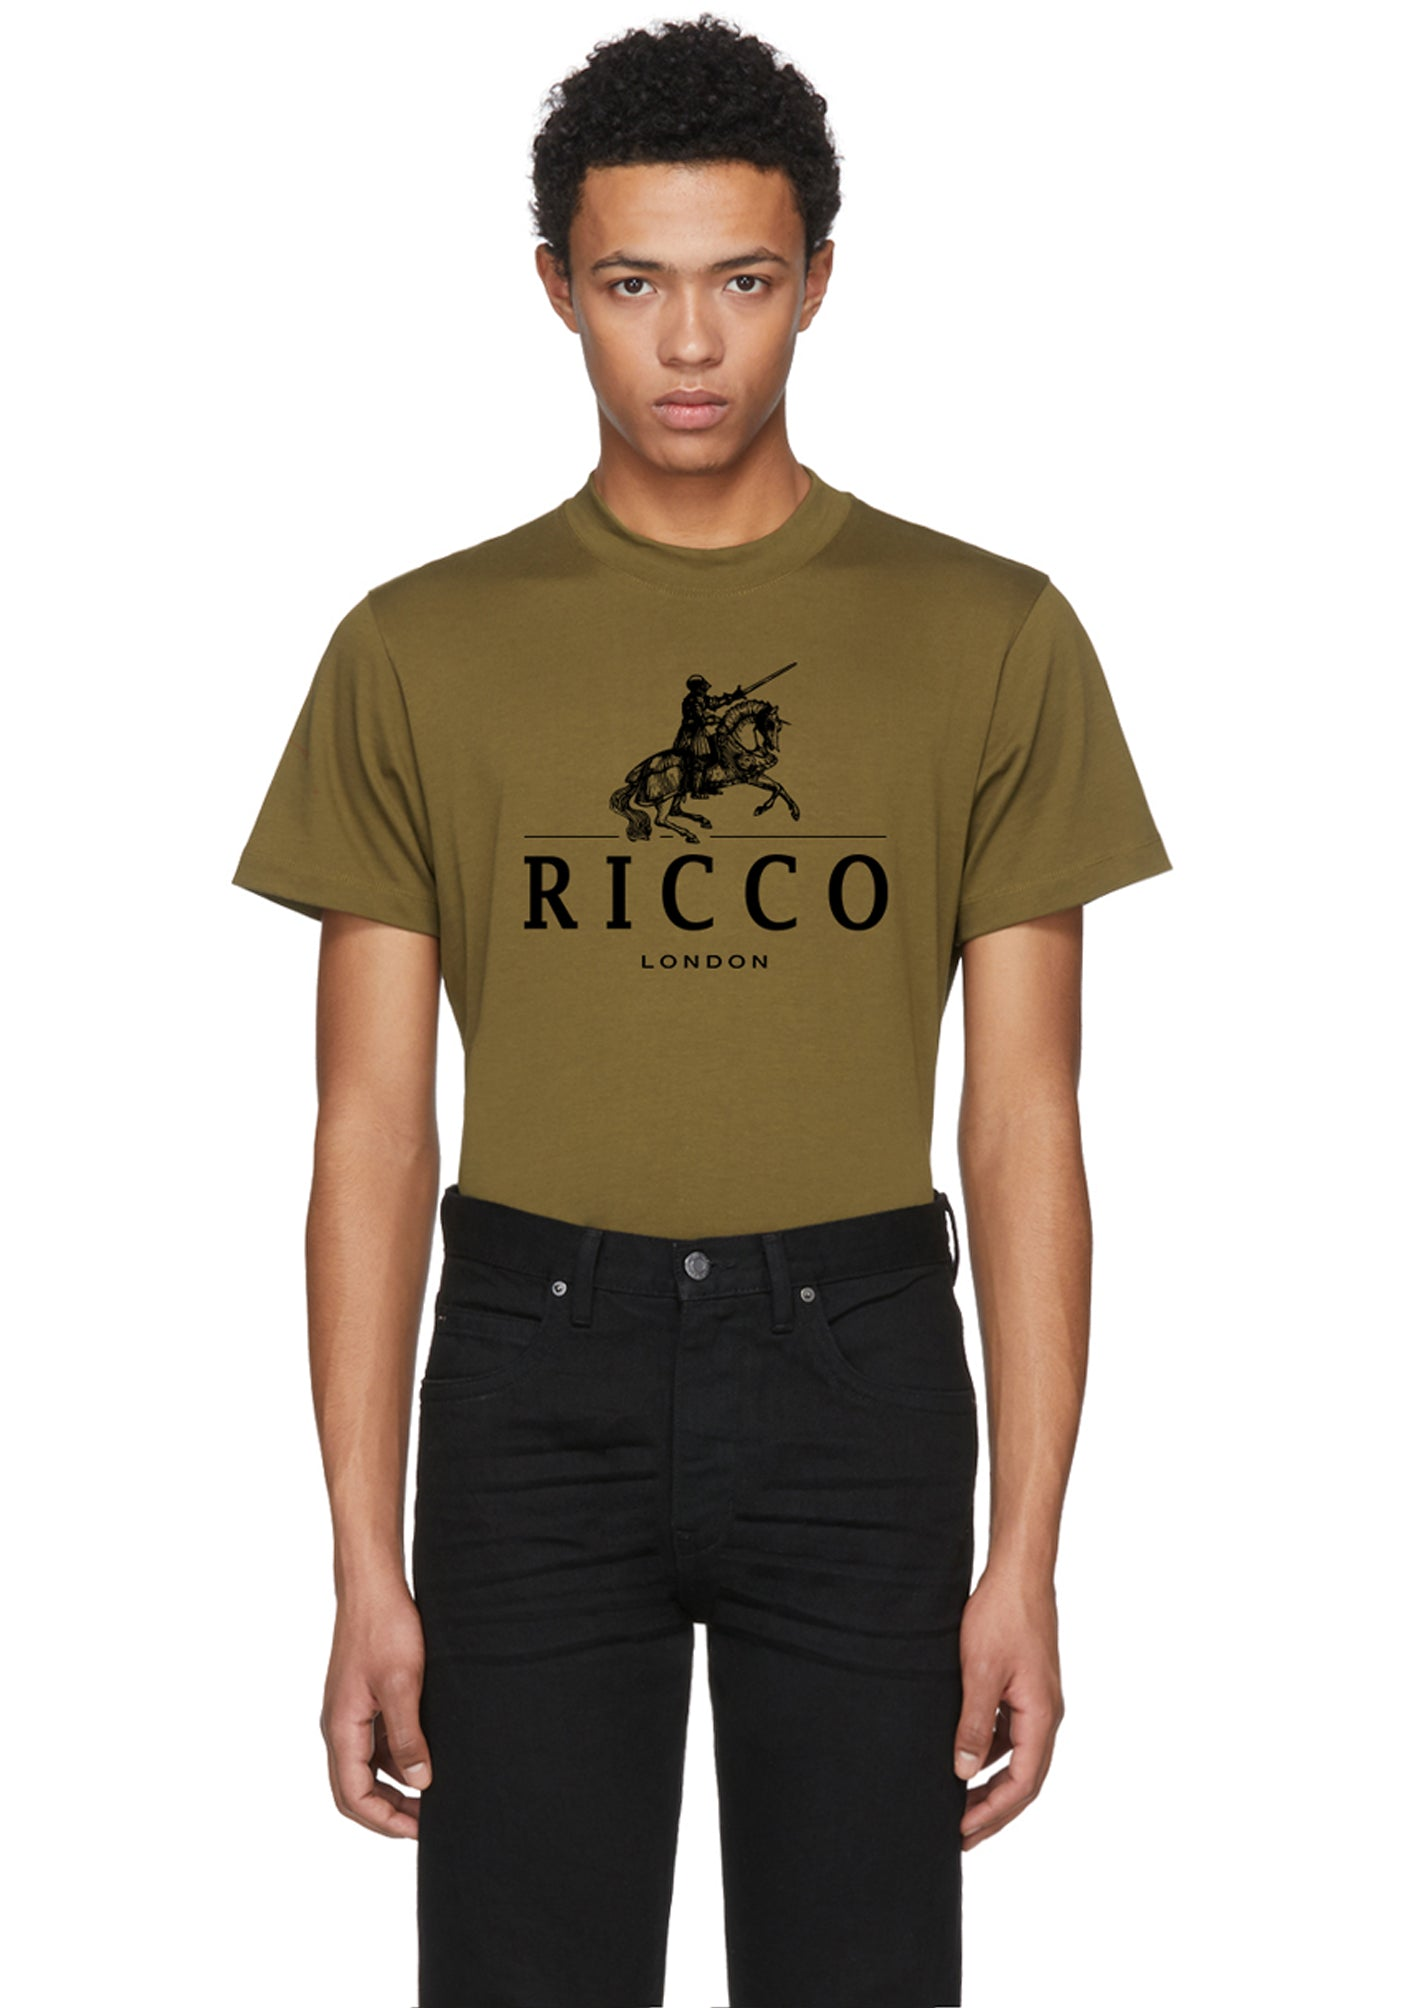 [Affordable Branded Clothing For Men & Women Online] - RICCO London